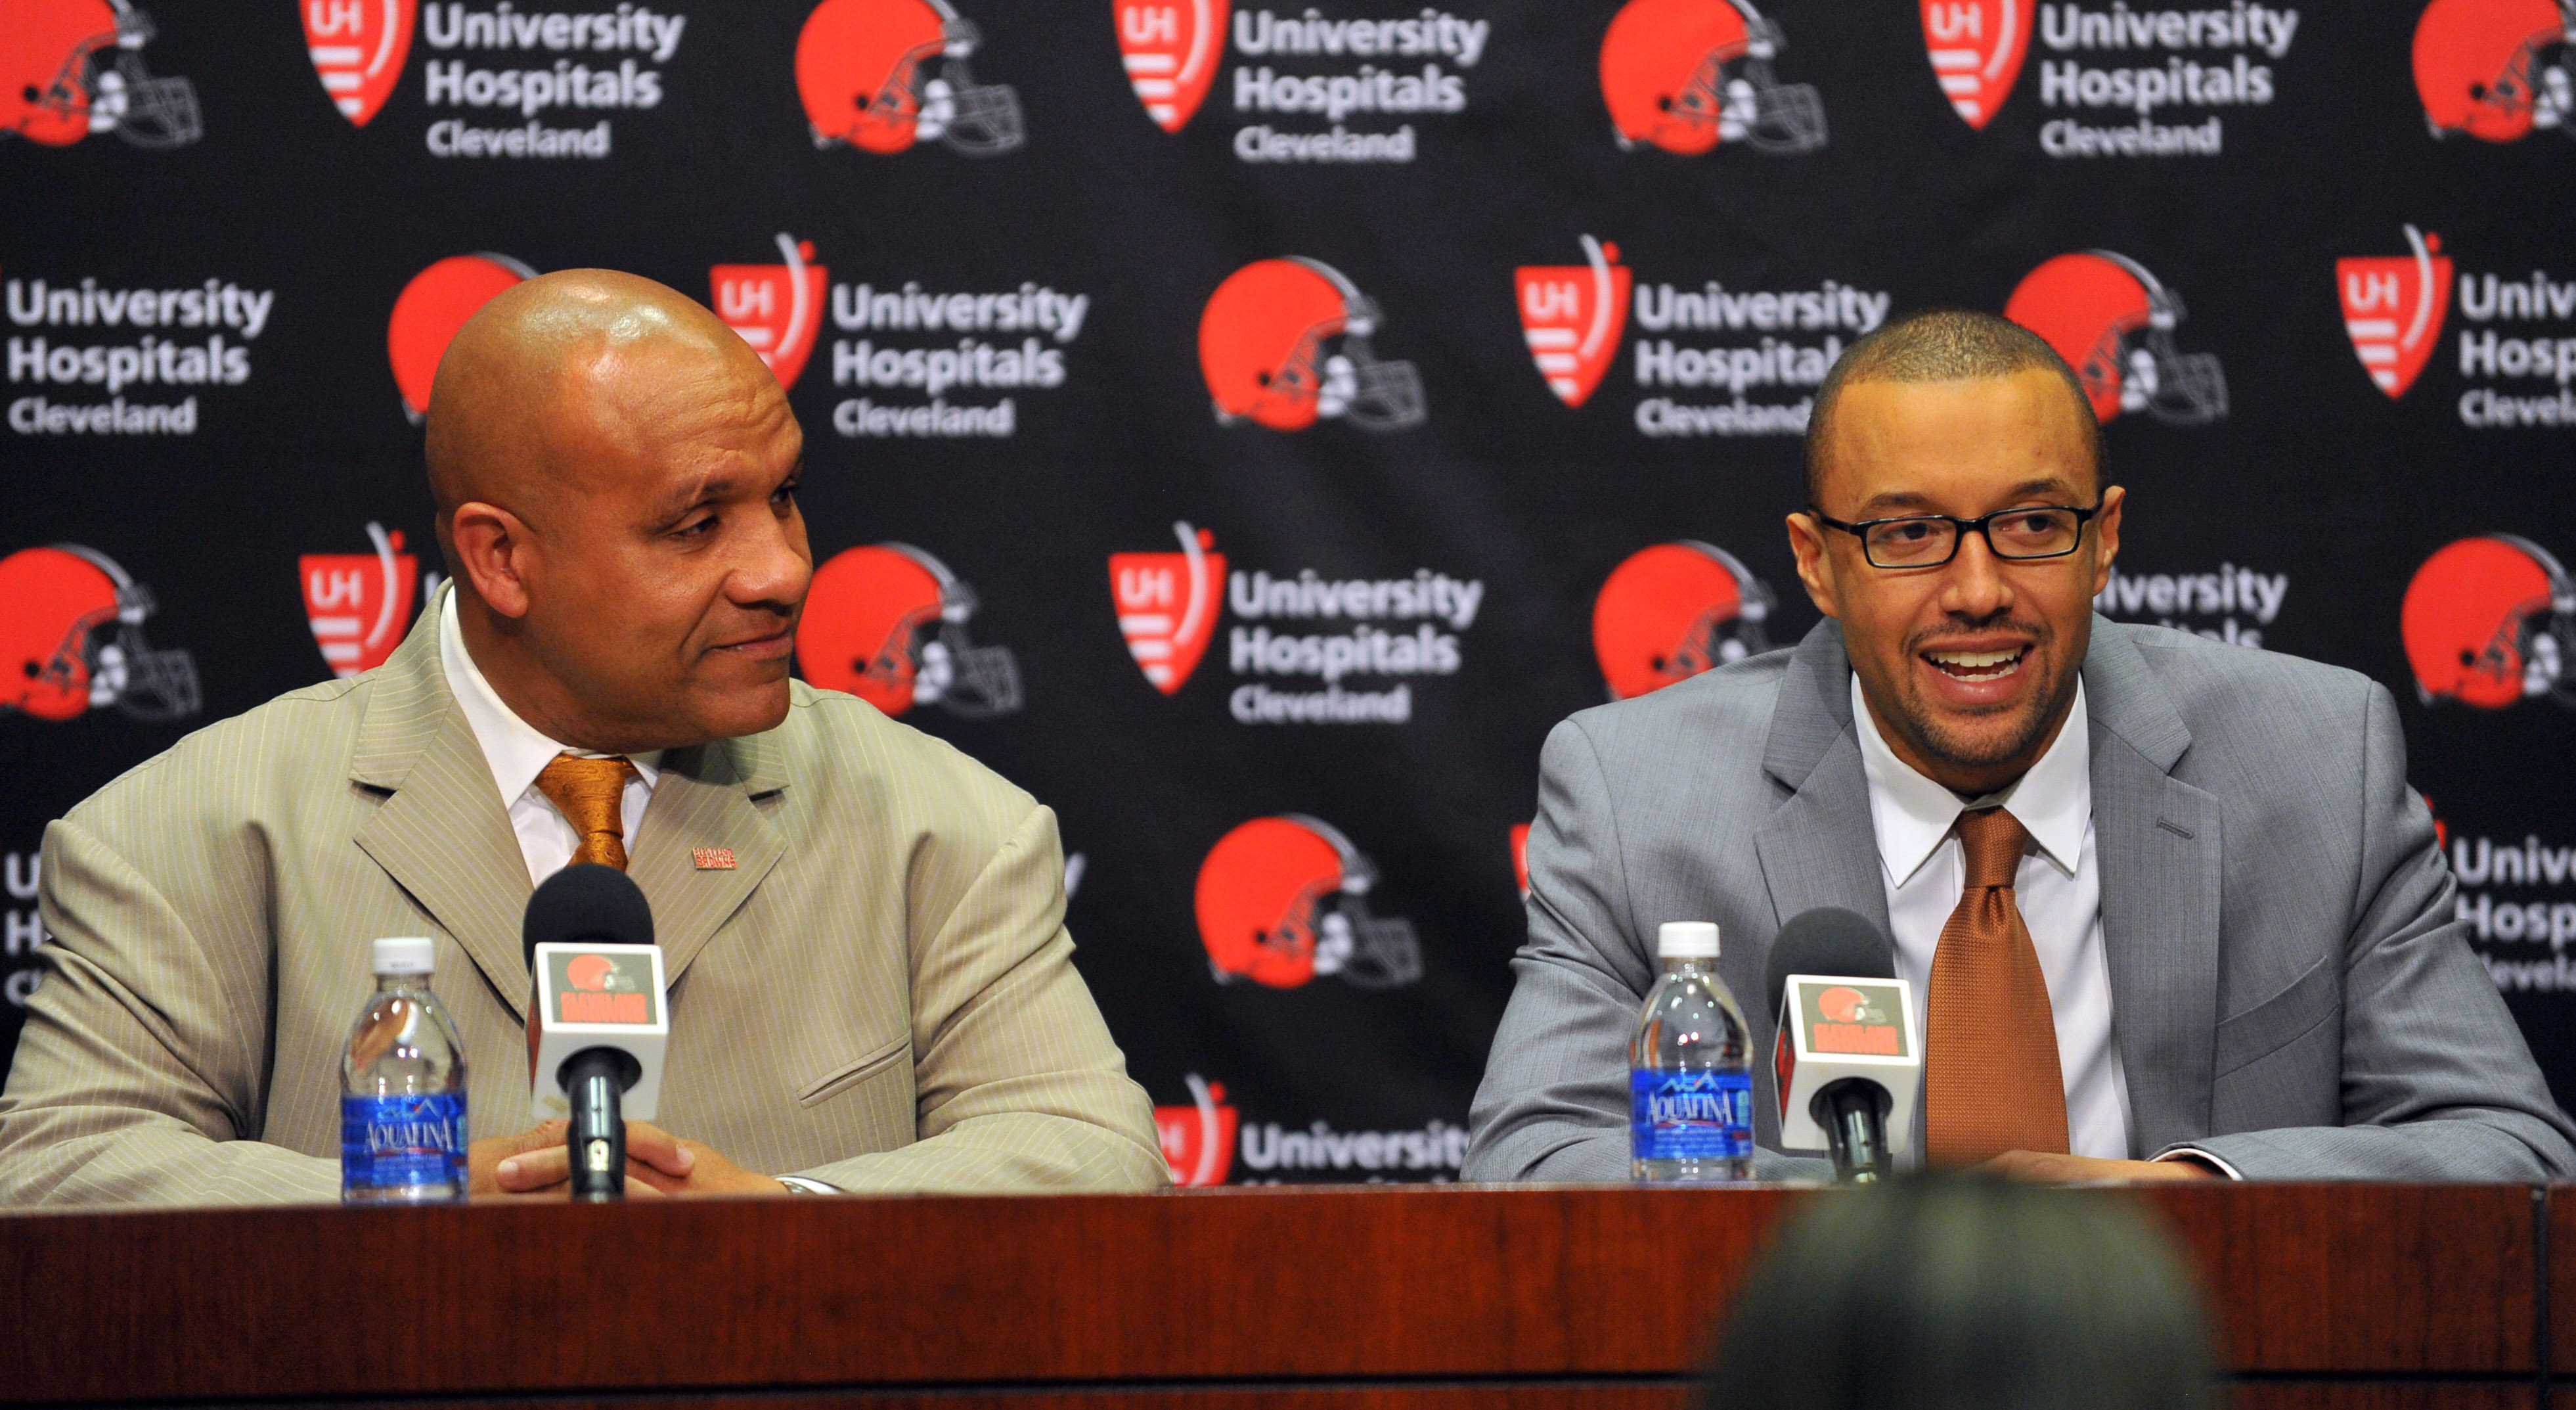 Browns GM Sashi Brown speaks at a press conference